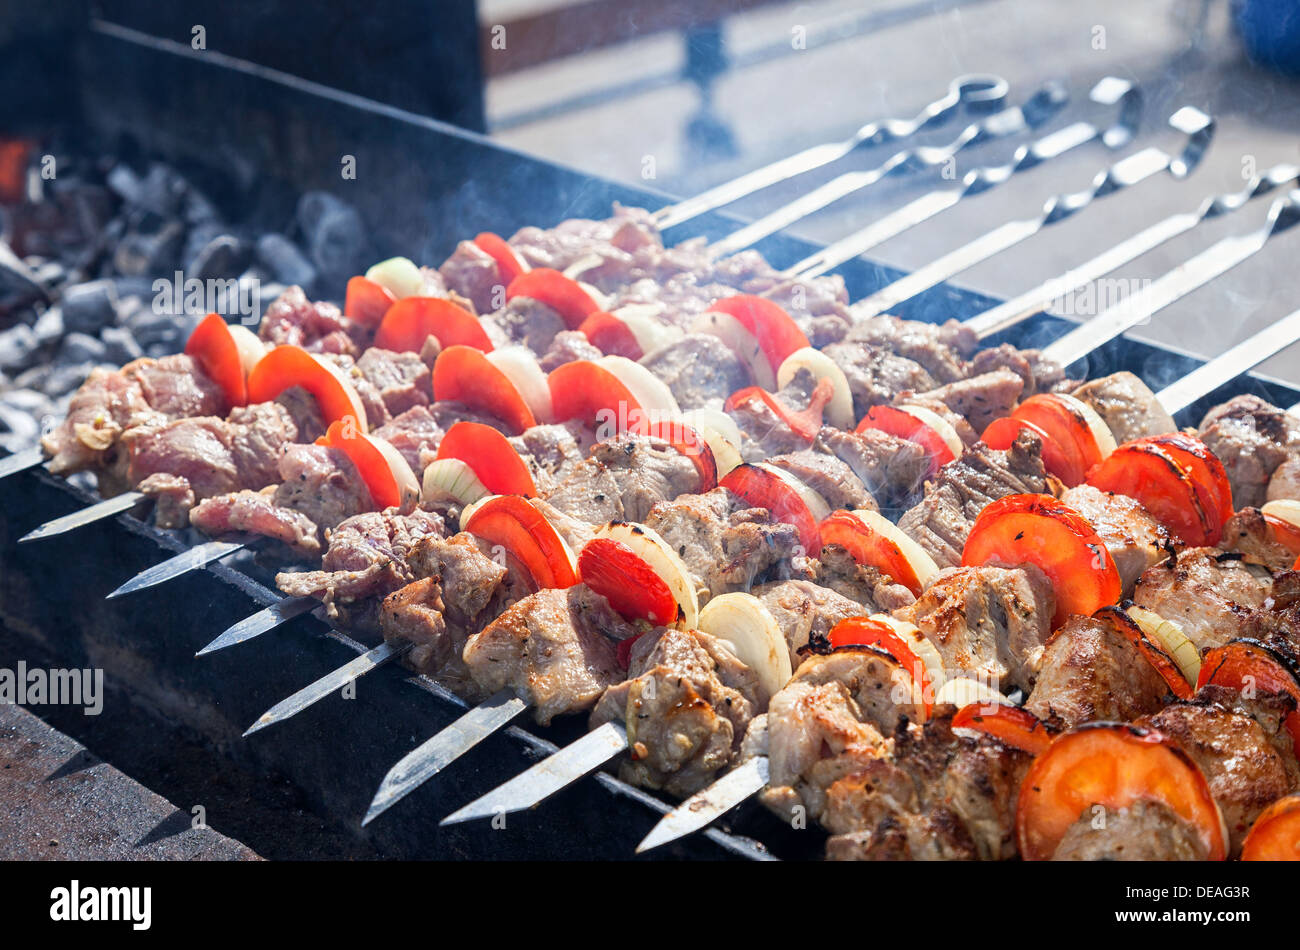 Juicy slices of meat with sauce prepare on coals - Stock Image